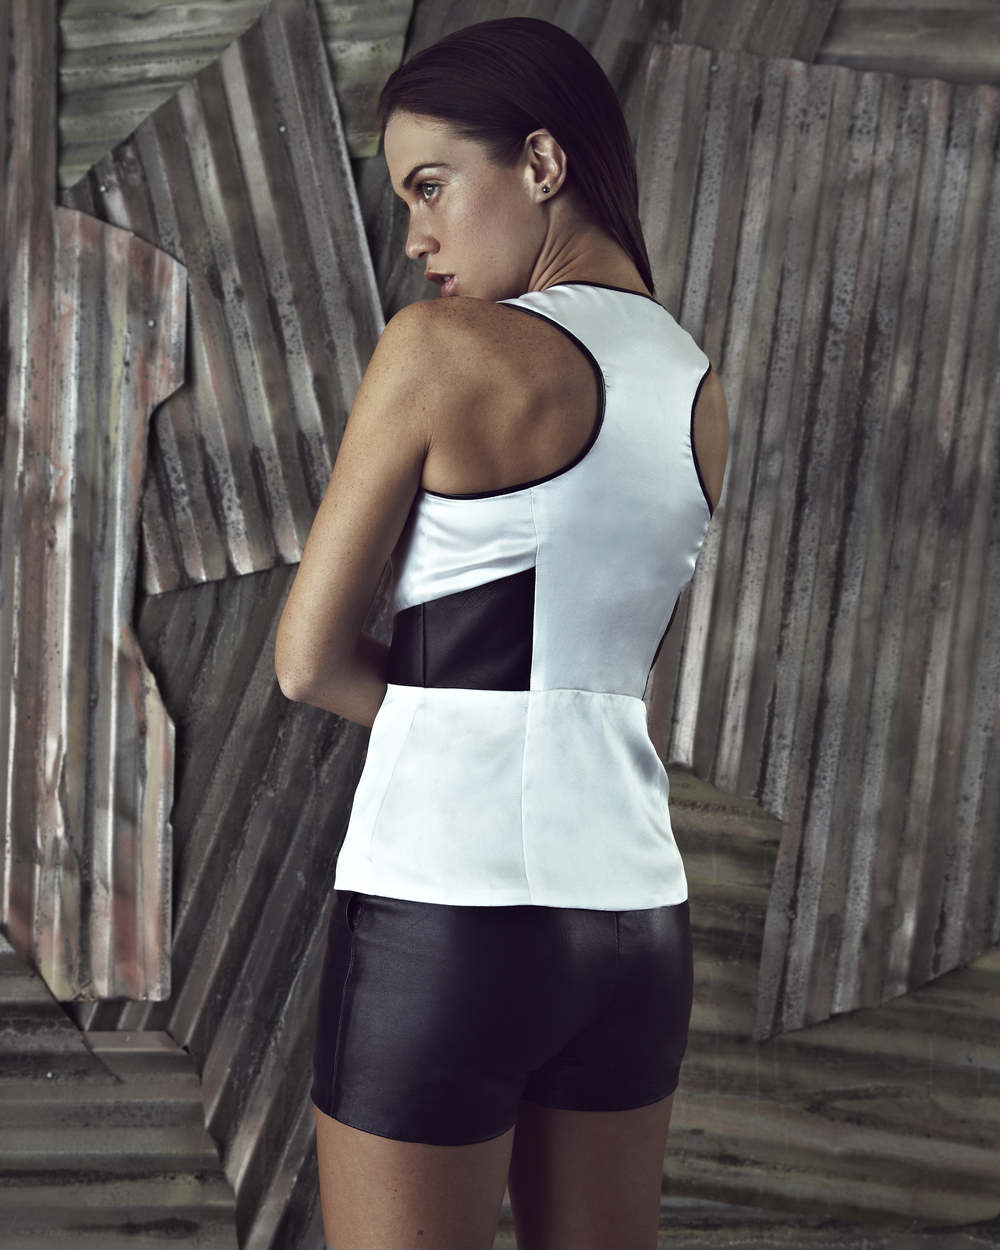 1406-WHITE-BACK CROP.jpg